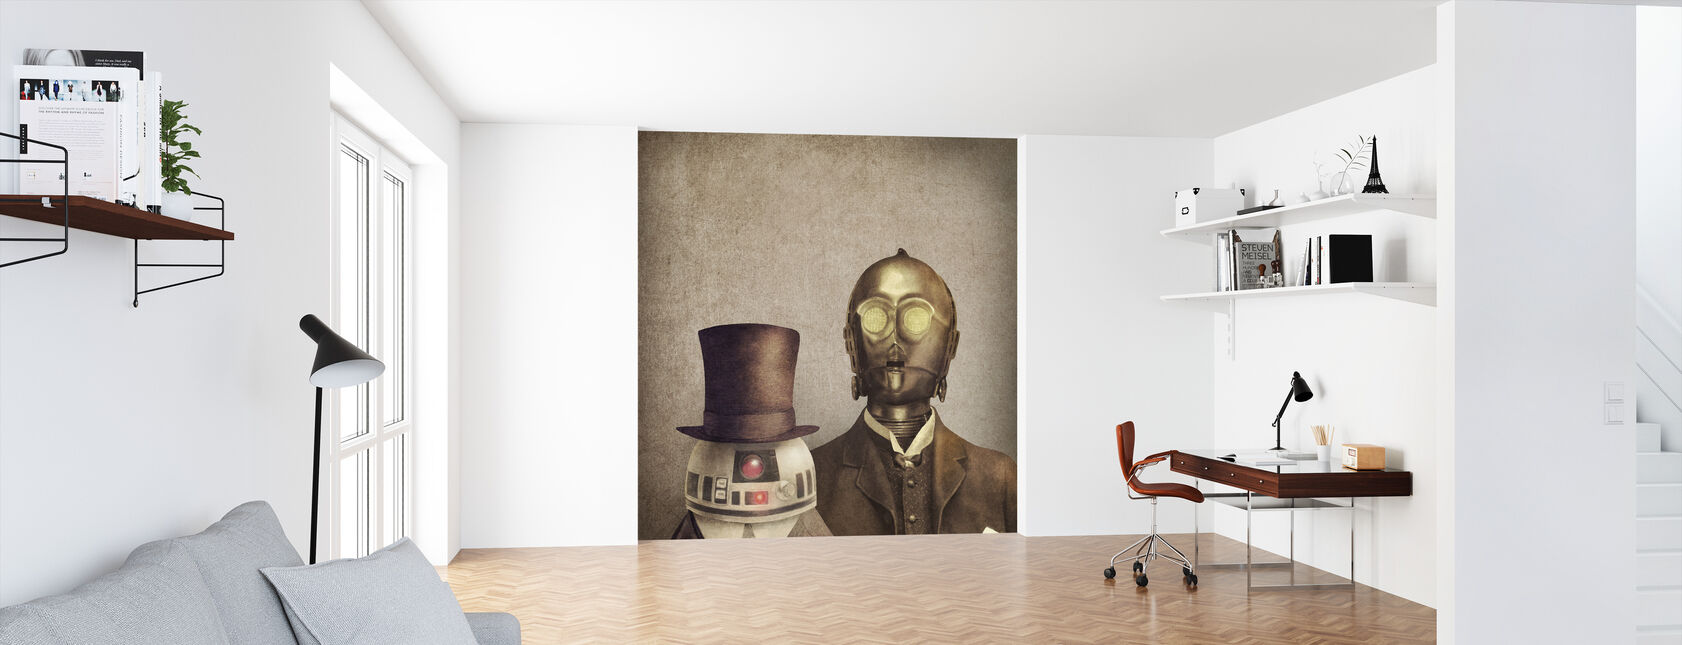 Victorian Robots - Wallpaper - Office